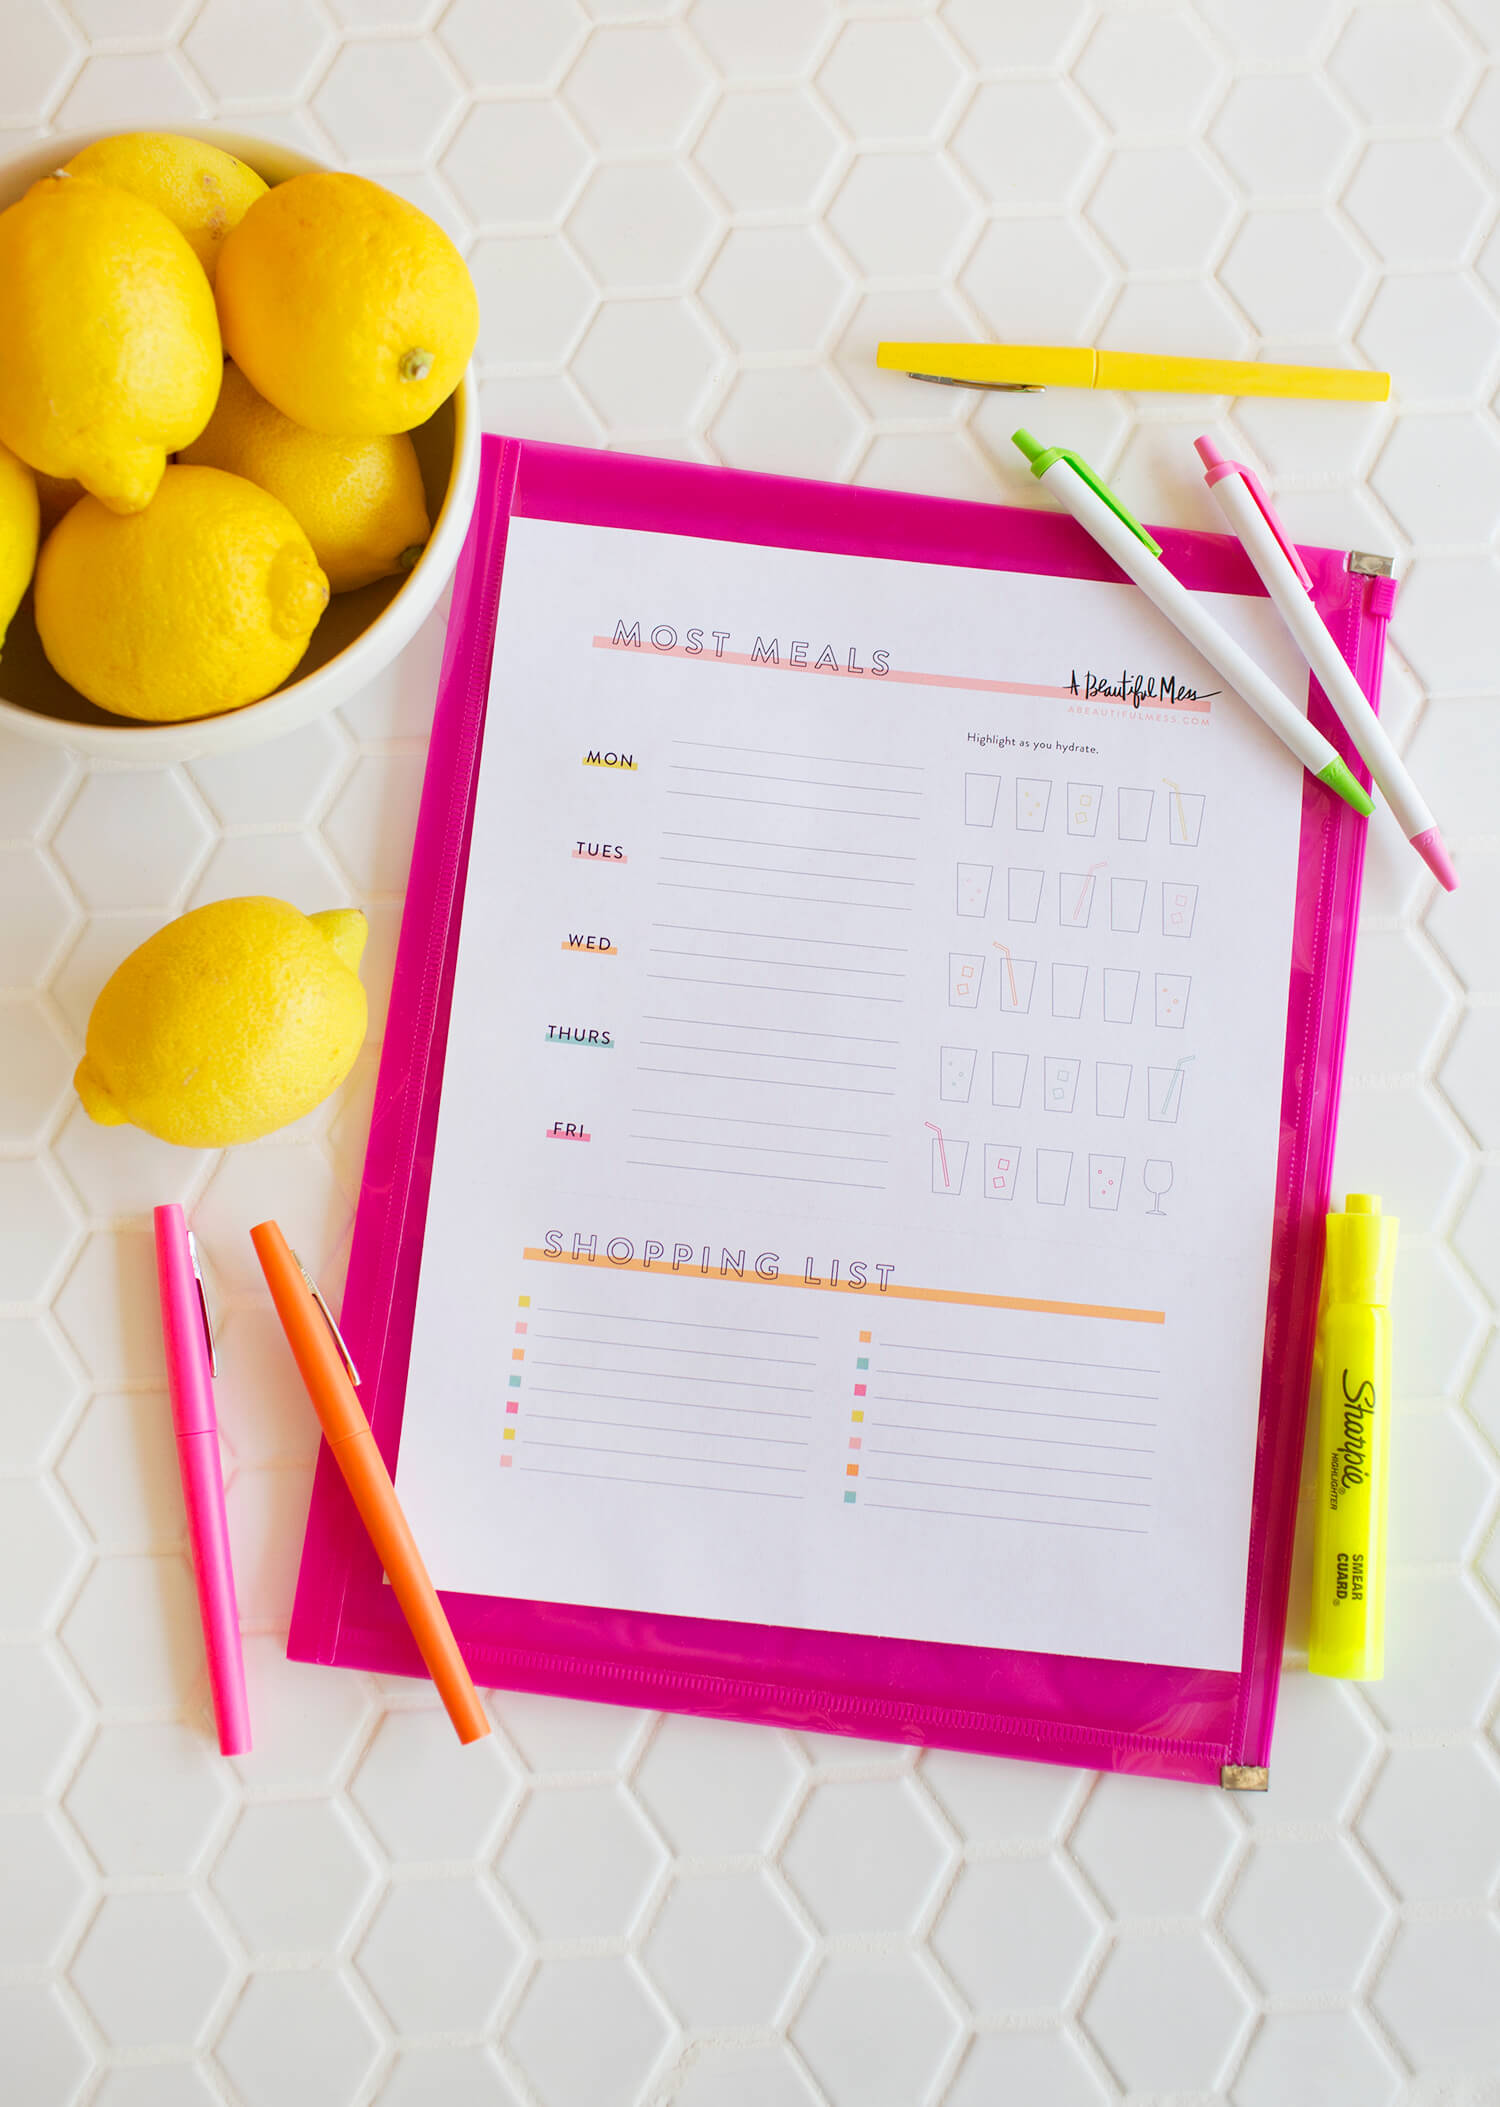 most-meals-printable-planner